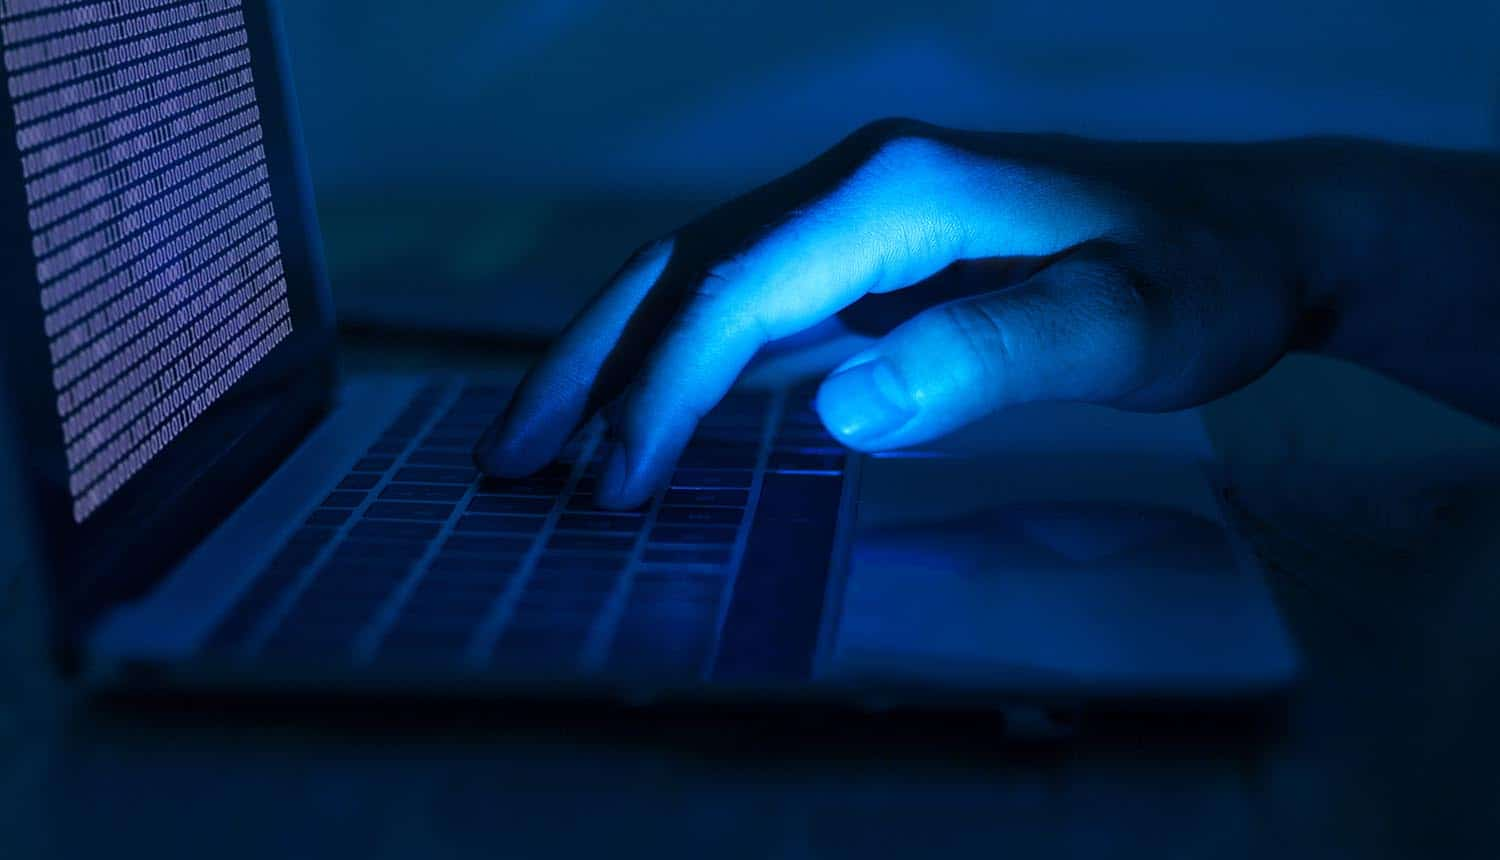 Hacker using laptop showing the Europol report on organized cybercrime highlighting crypto ransomware as top threat